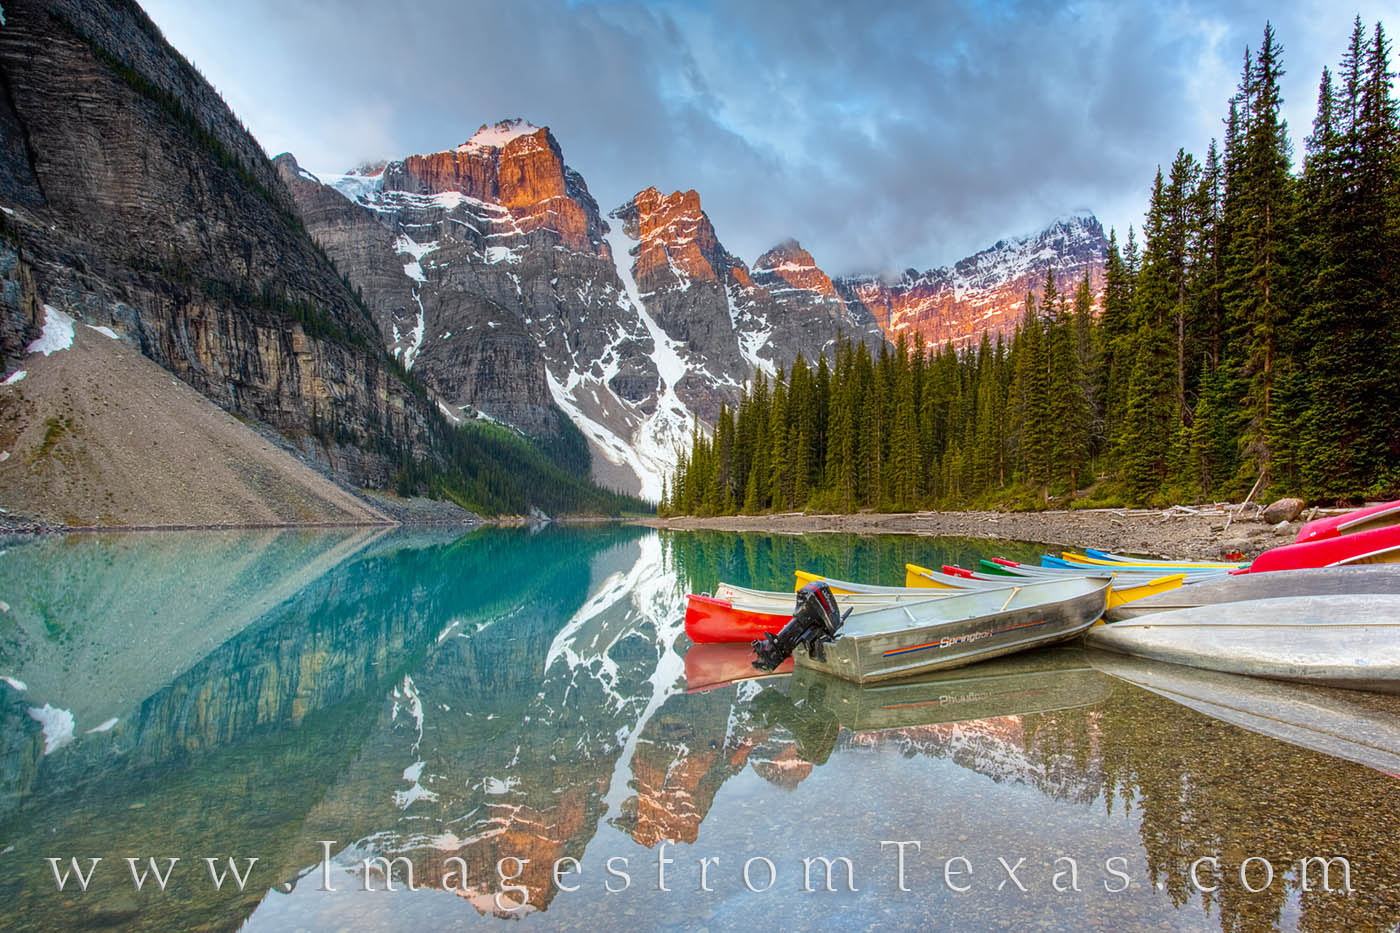 Early morning at Moraine Lake in Banff National Park, and the waters are quiet. The colorful boats are still ashore and the tourists...